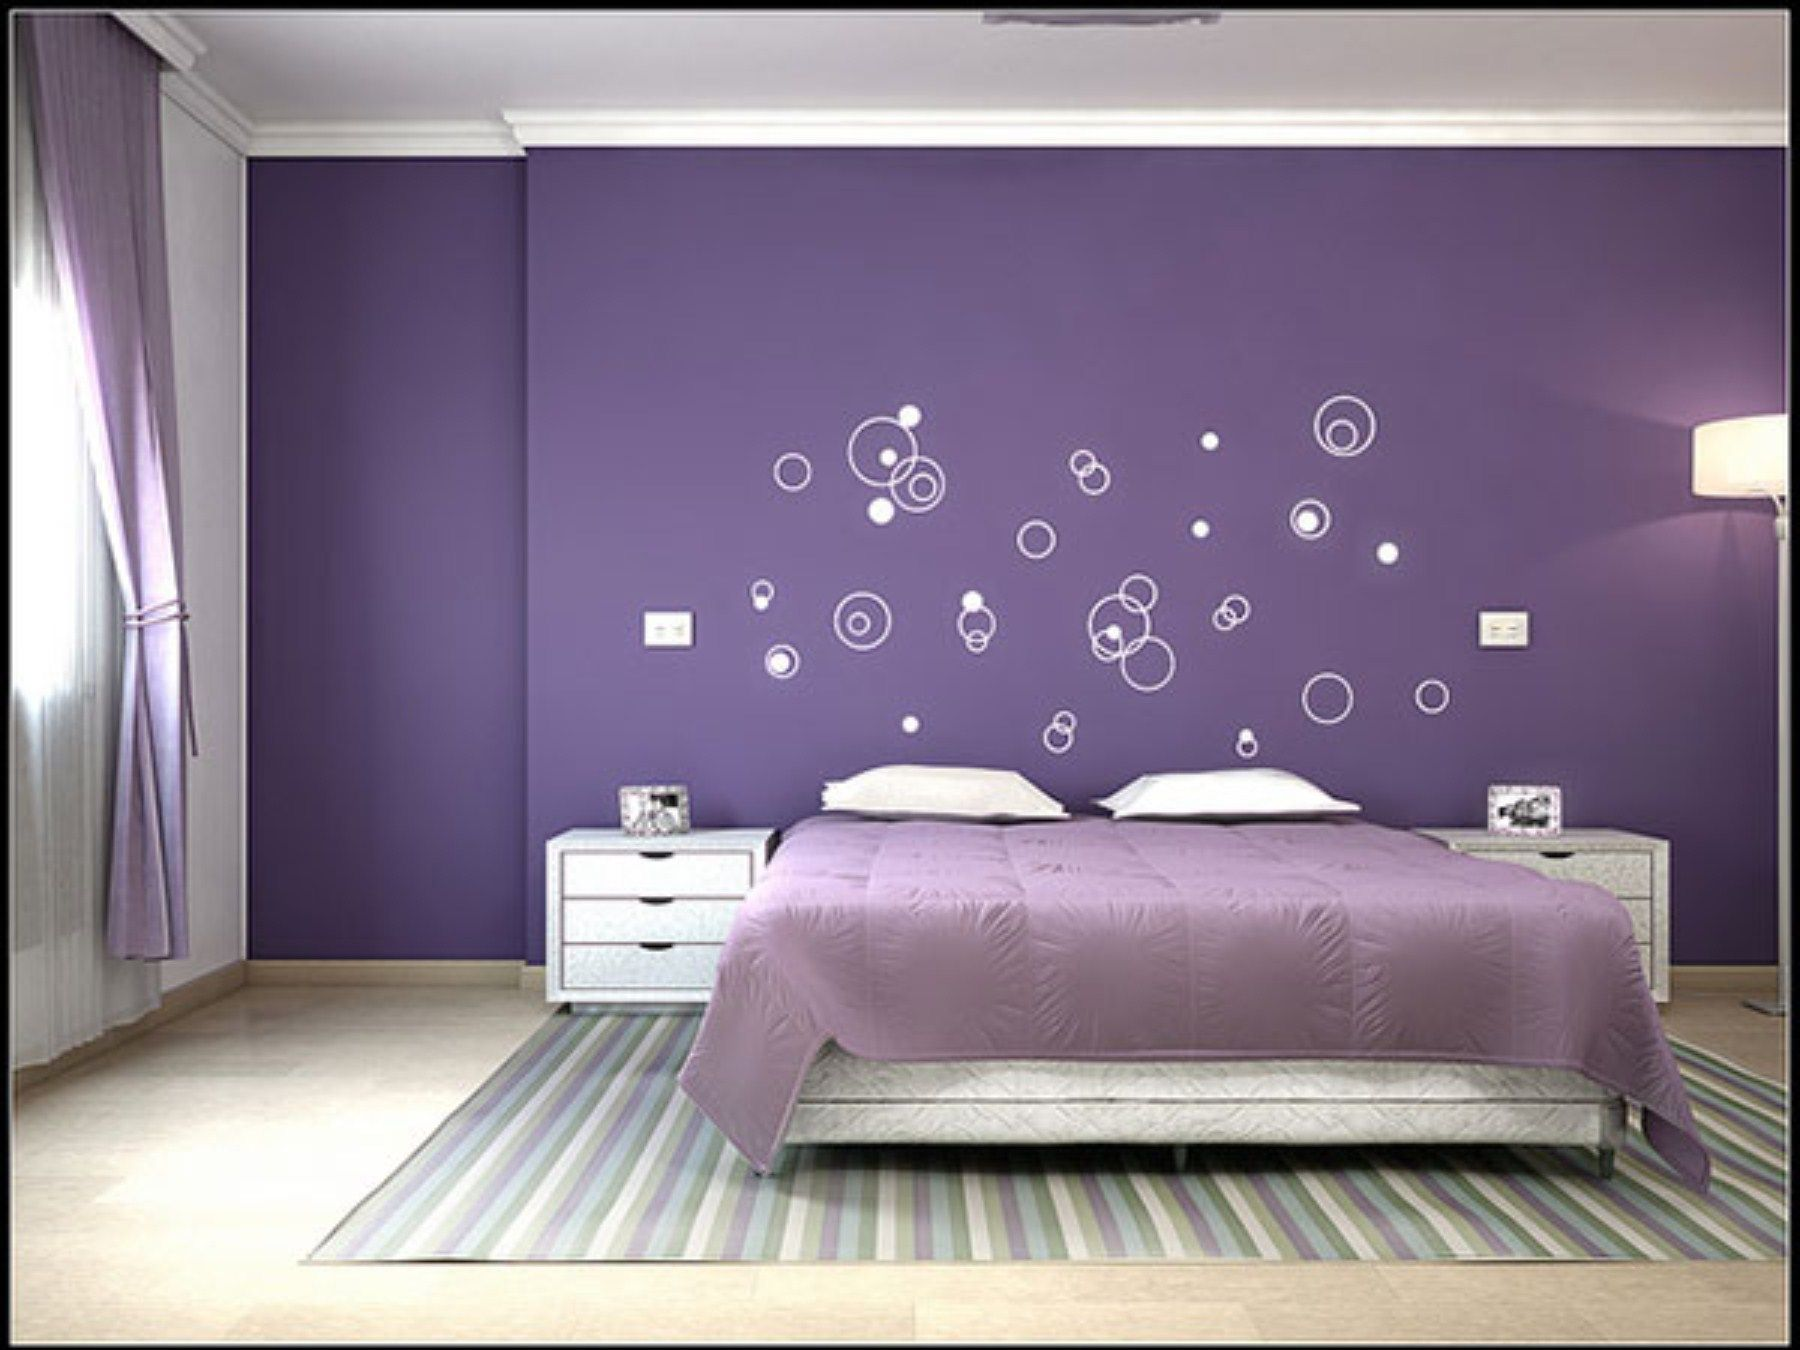 Bedroom Purple Color Schemes With Unique Wall Art And Rh Pinterest Com